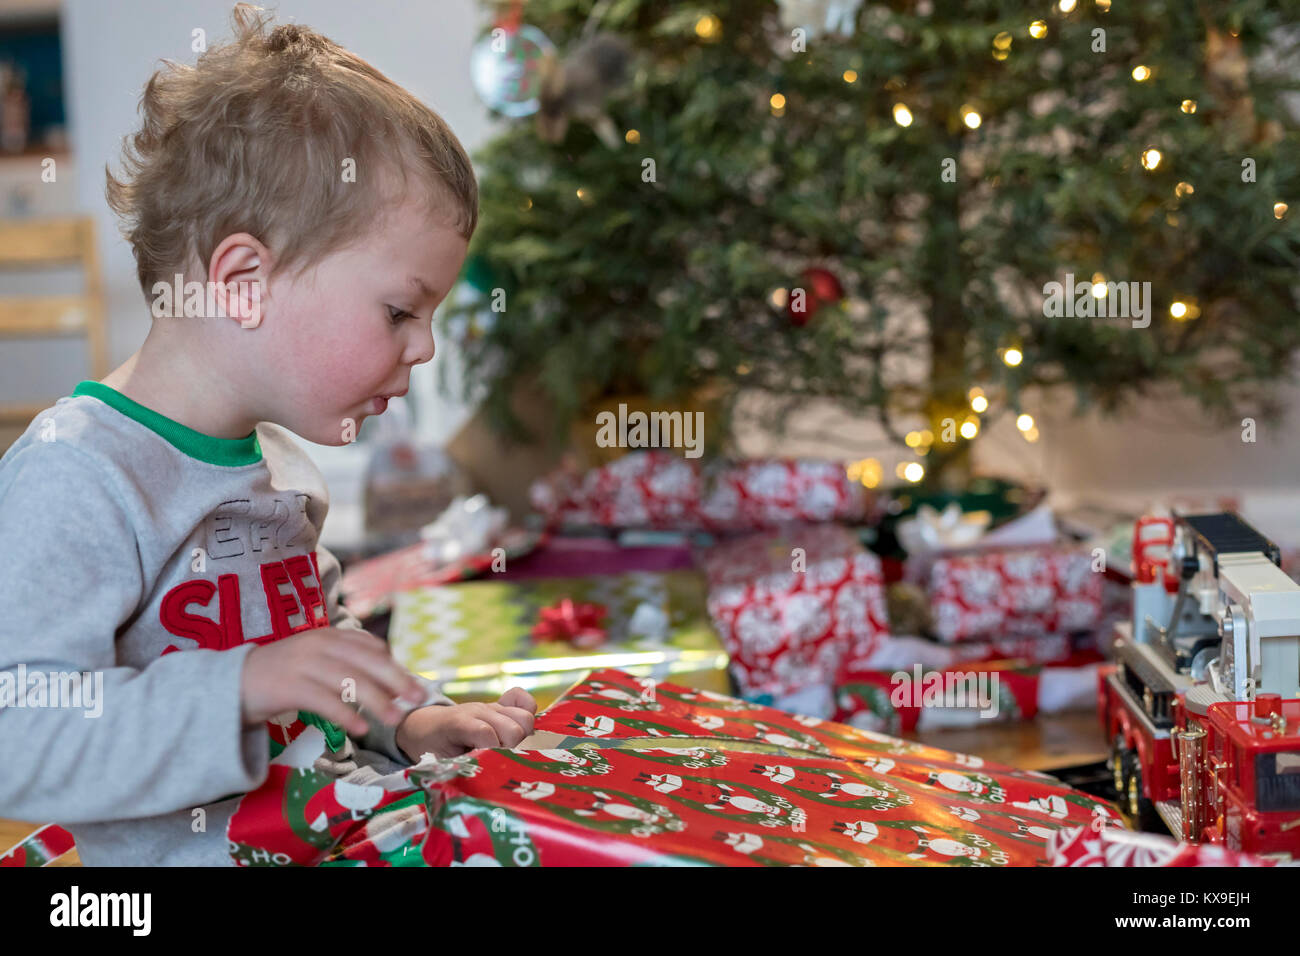 Wheat Ridge, Colorado - Adam Hjermstad Jr., 3, opens presents by his family's Christmas tree on Christmas morning. - Stock Image